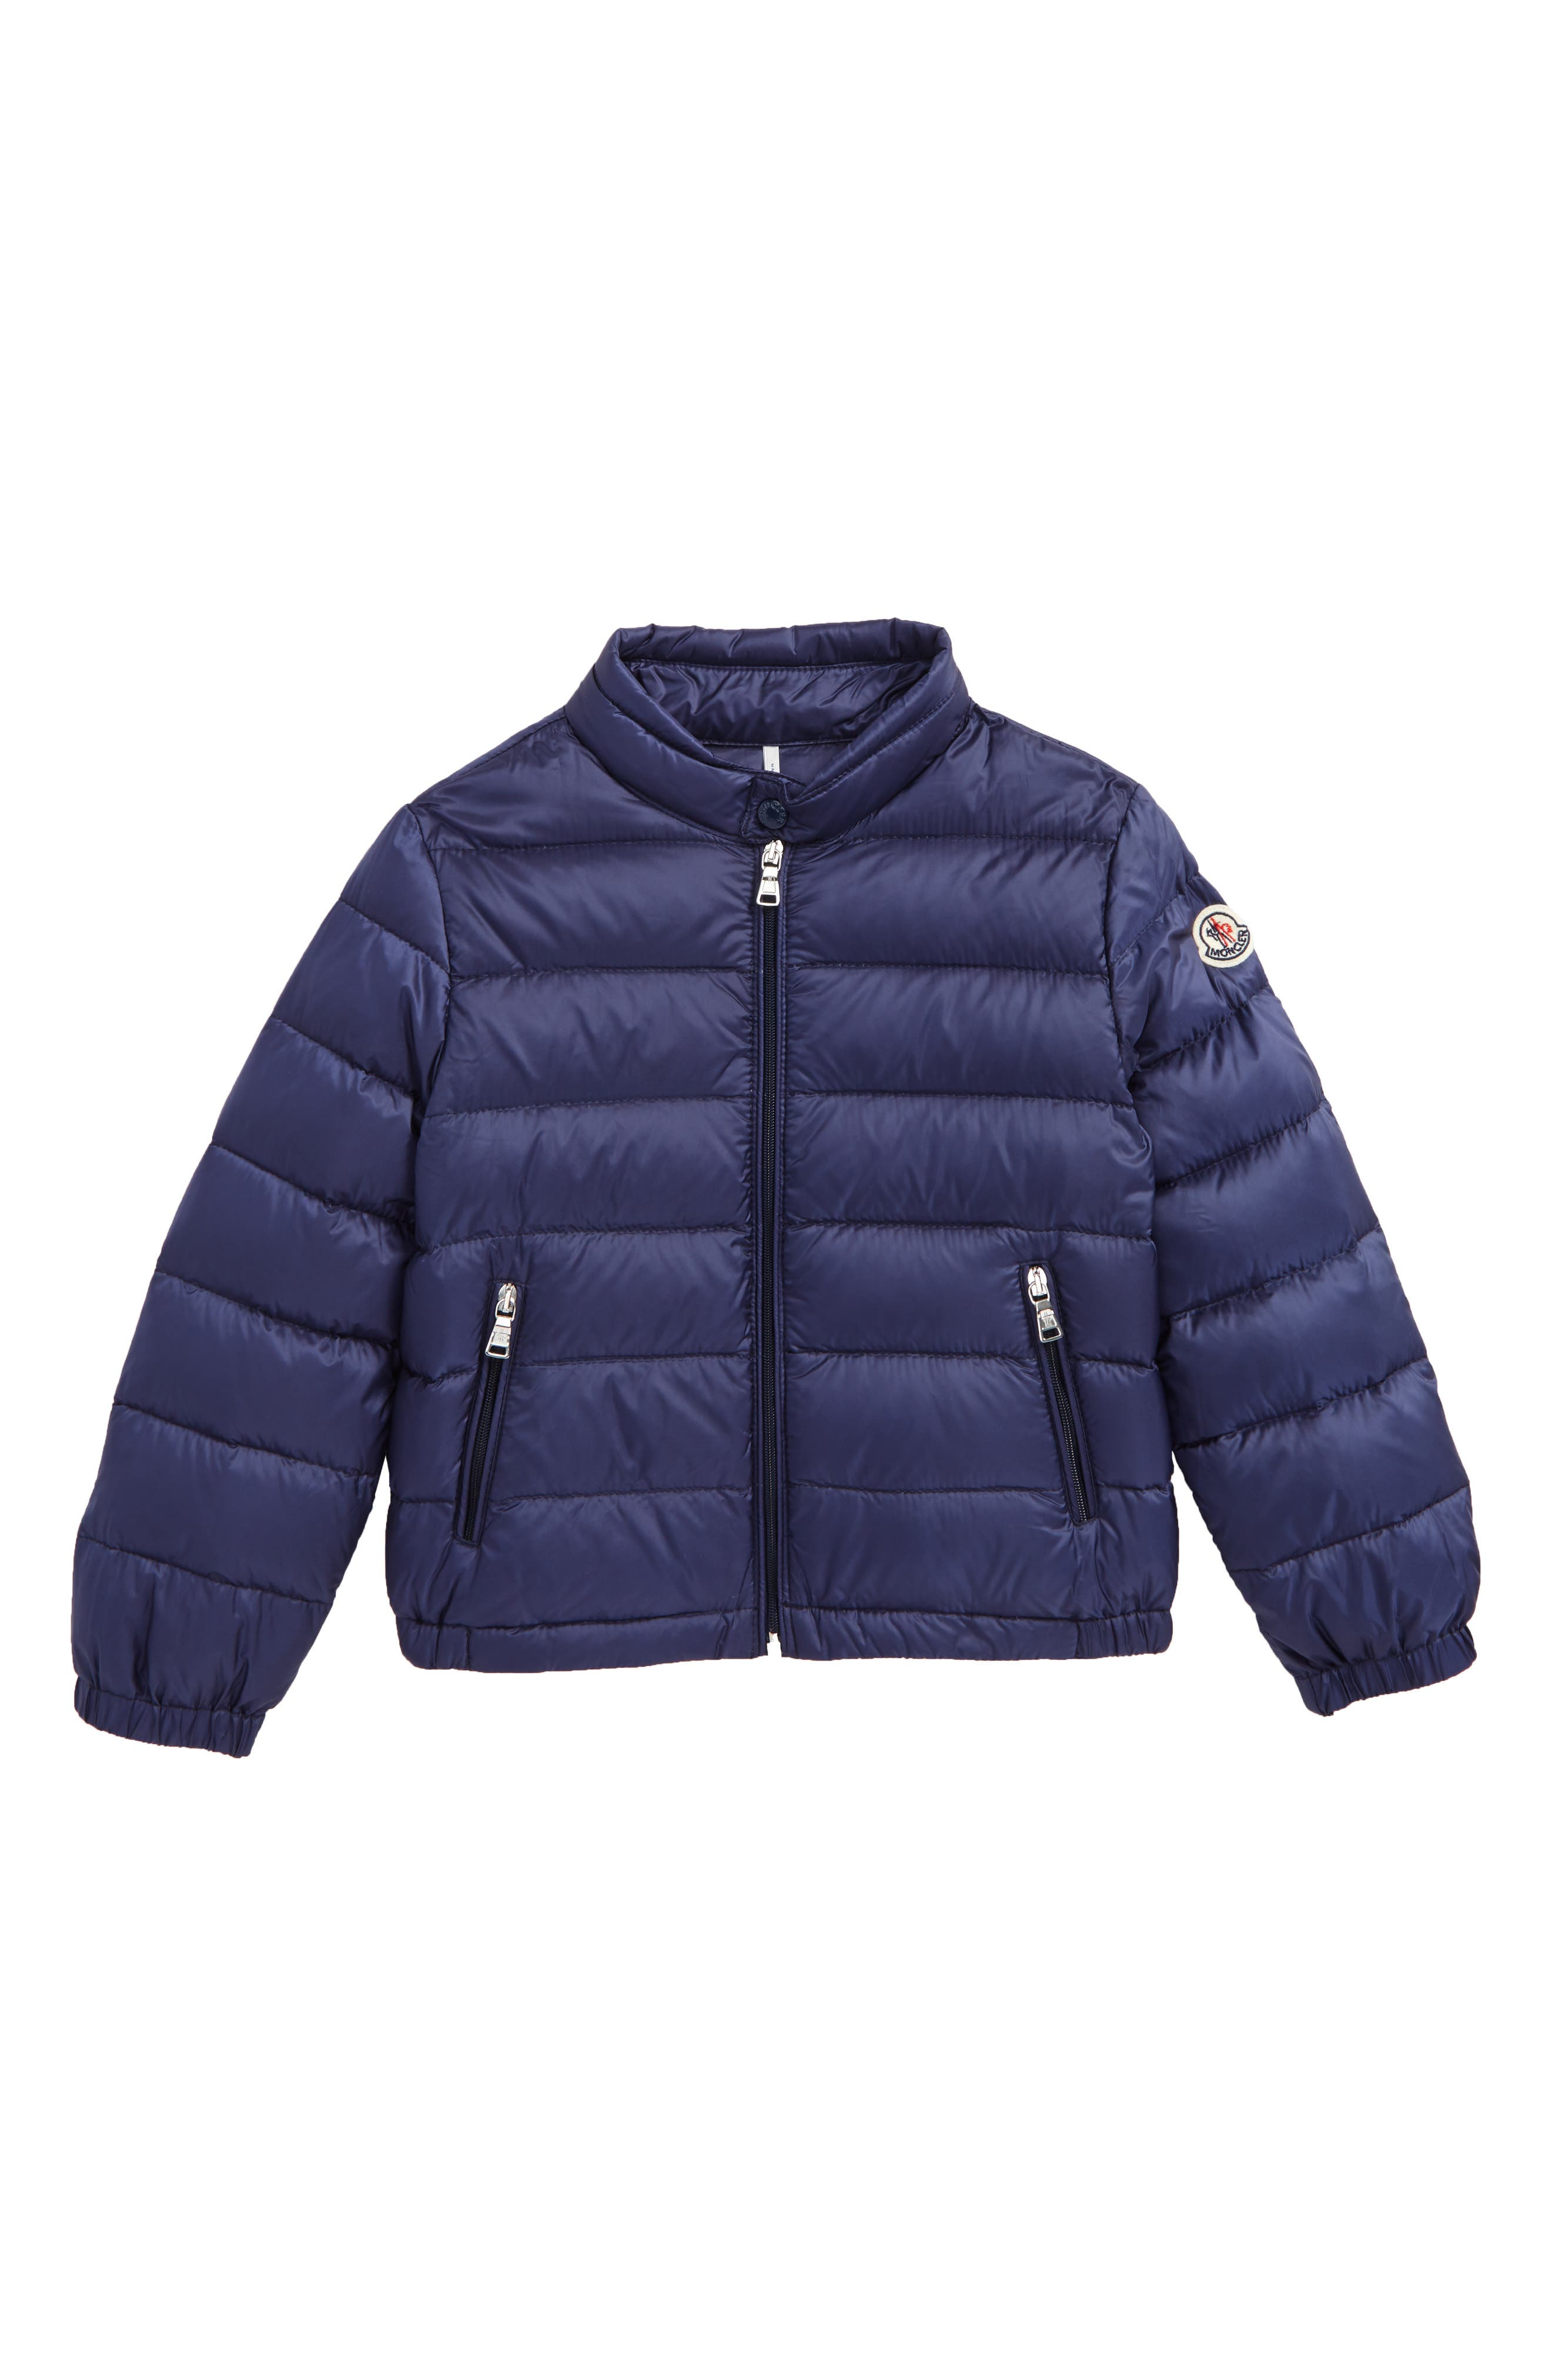 Quilted Down Jacket,                             Main thumbnail 1, color,                             420